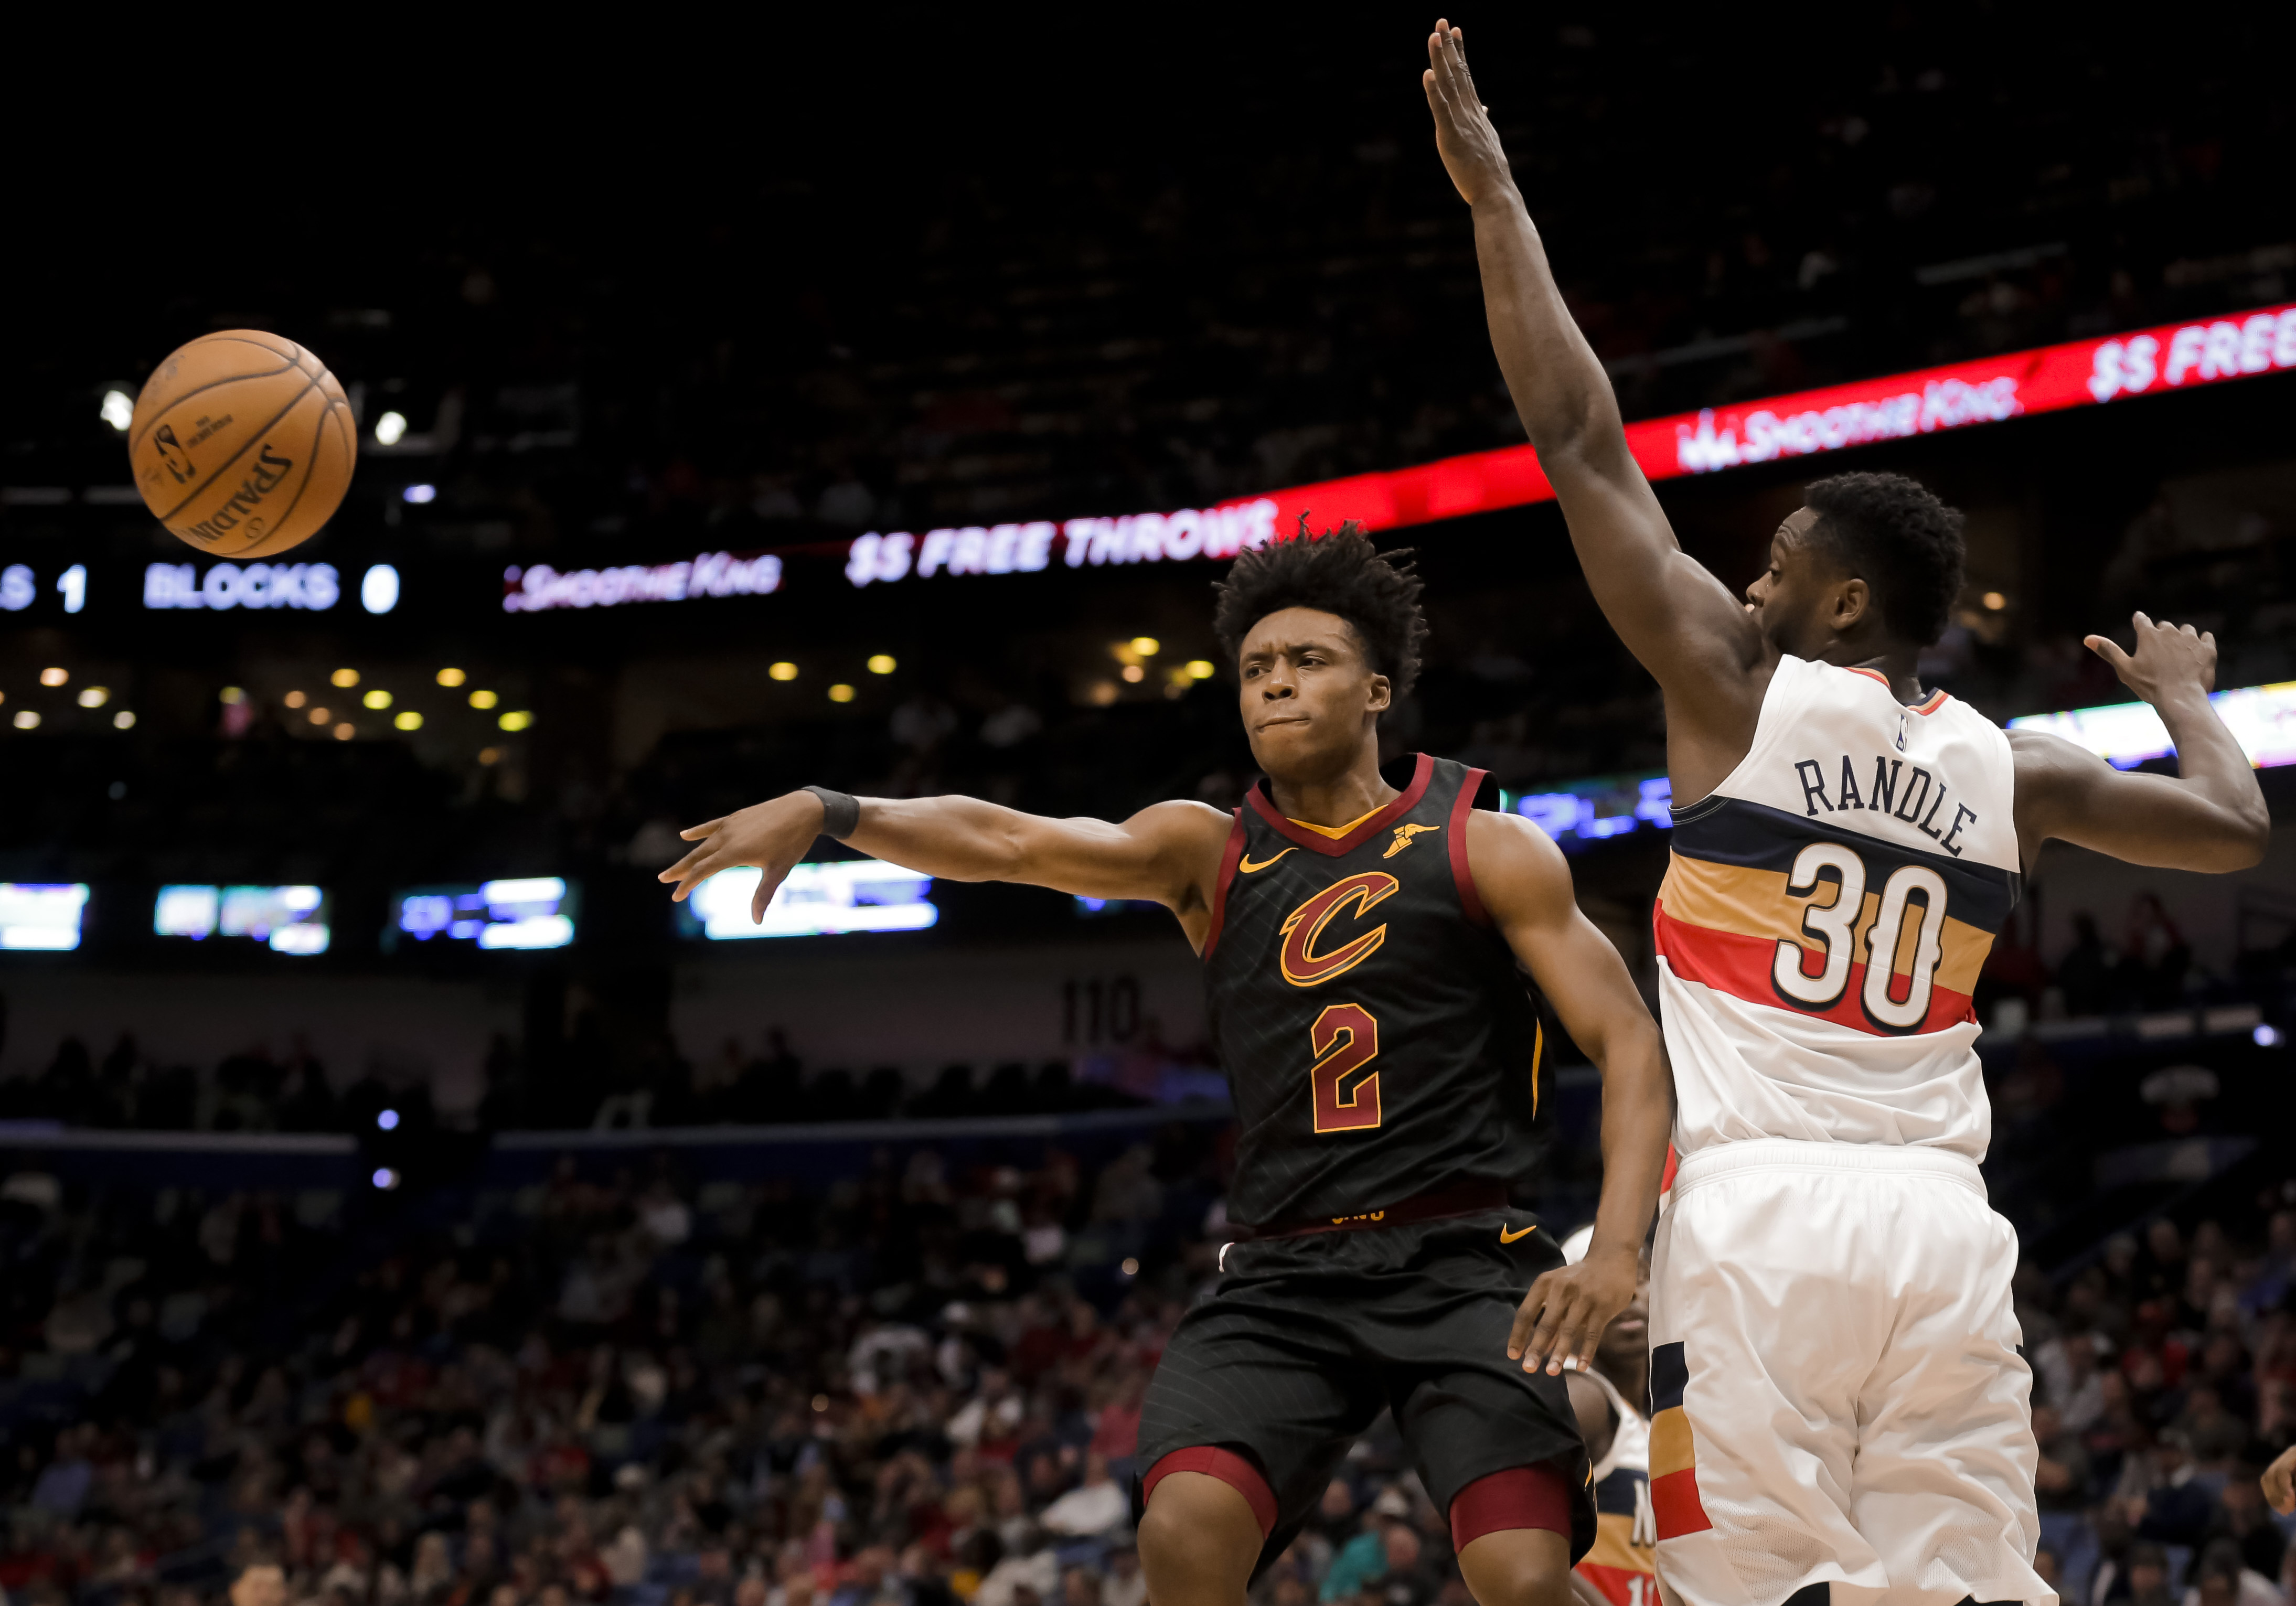 d9ff424e99d8 Cleveland Cavaliers rookie point guard Collin Sexton has faced a lot of  criticism this season